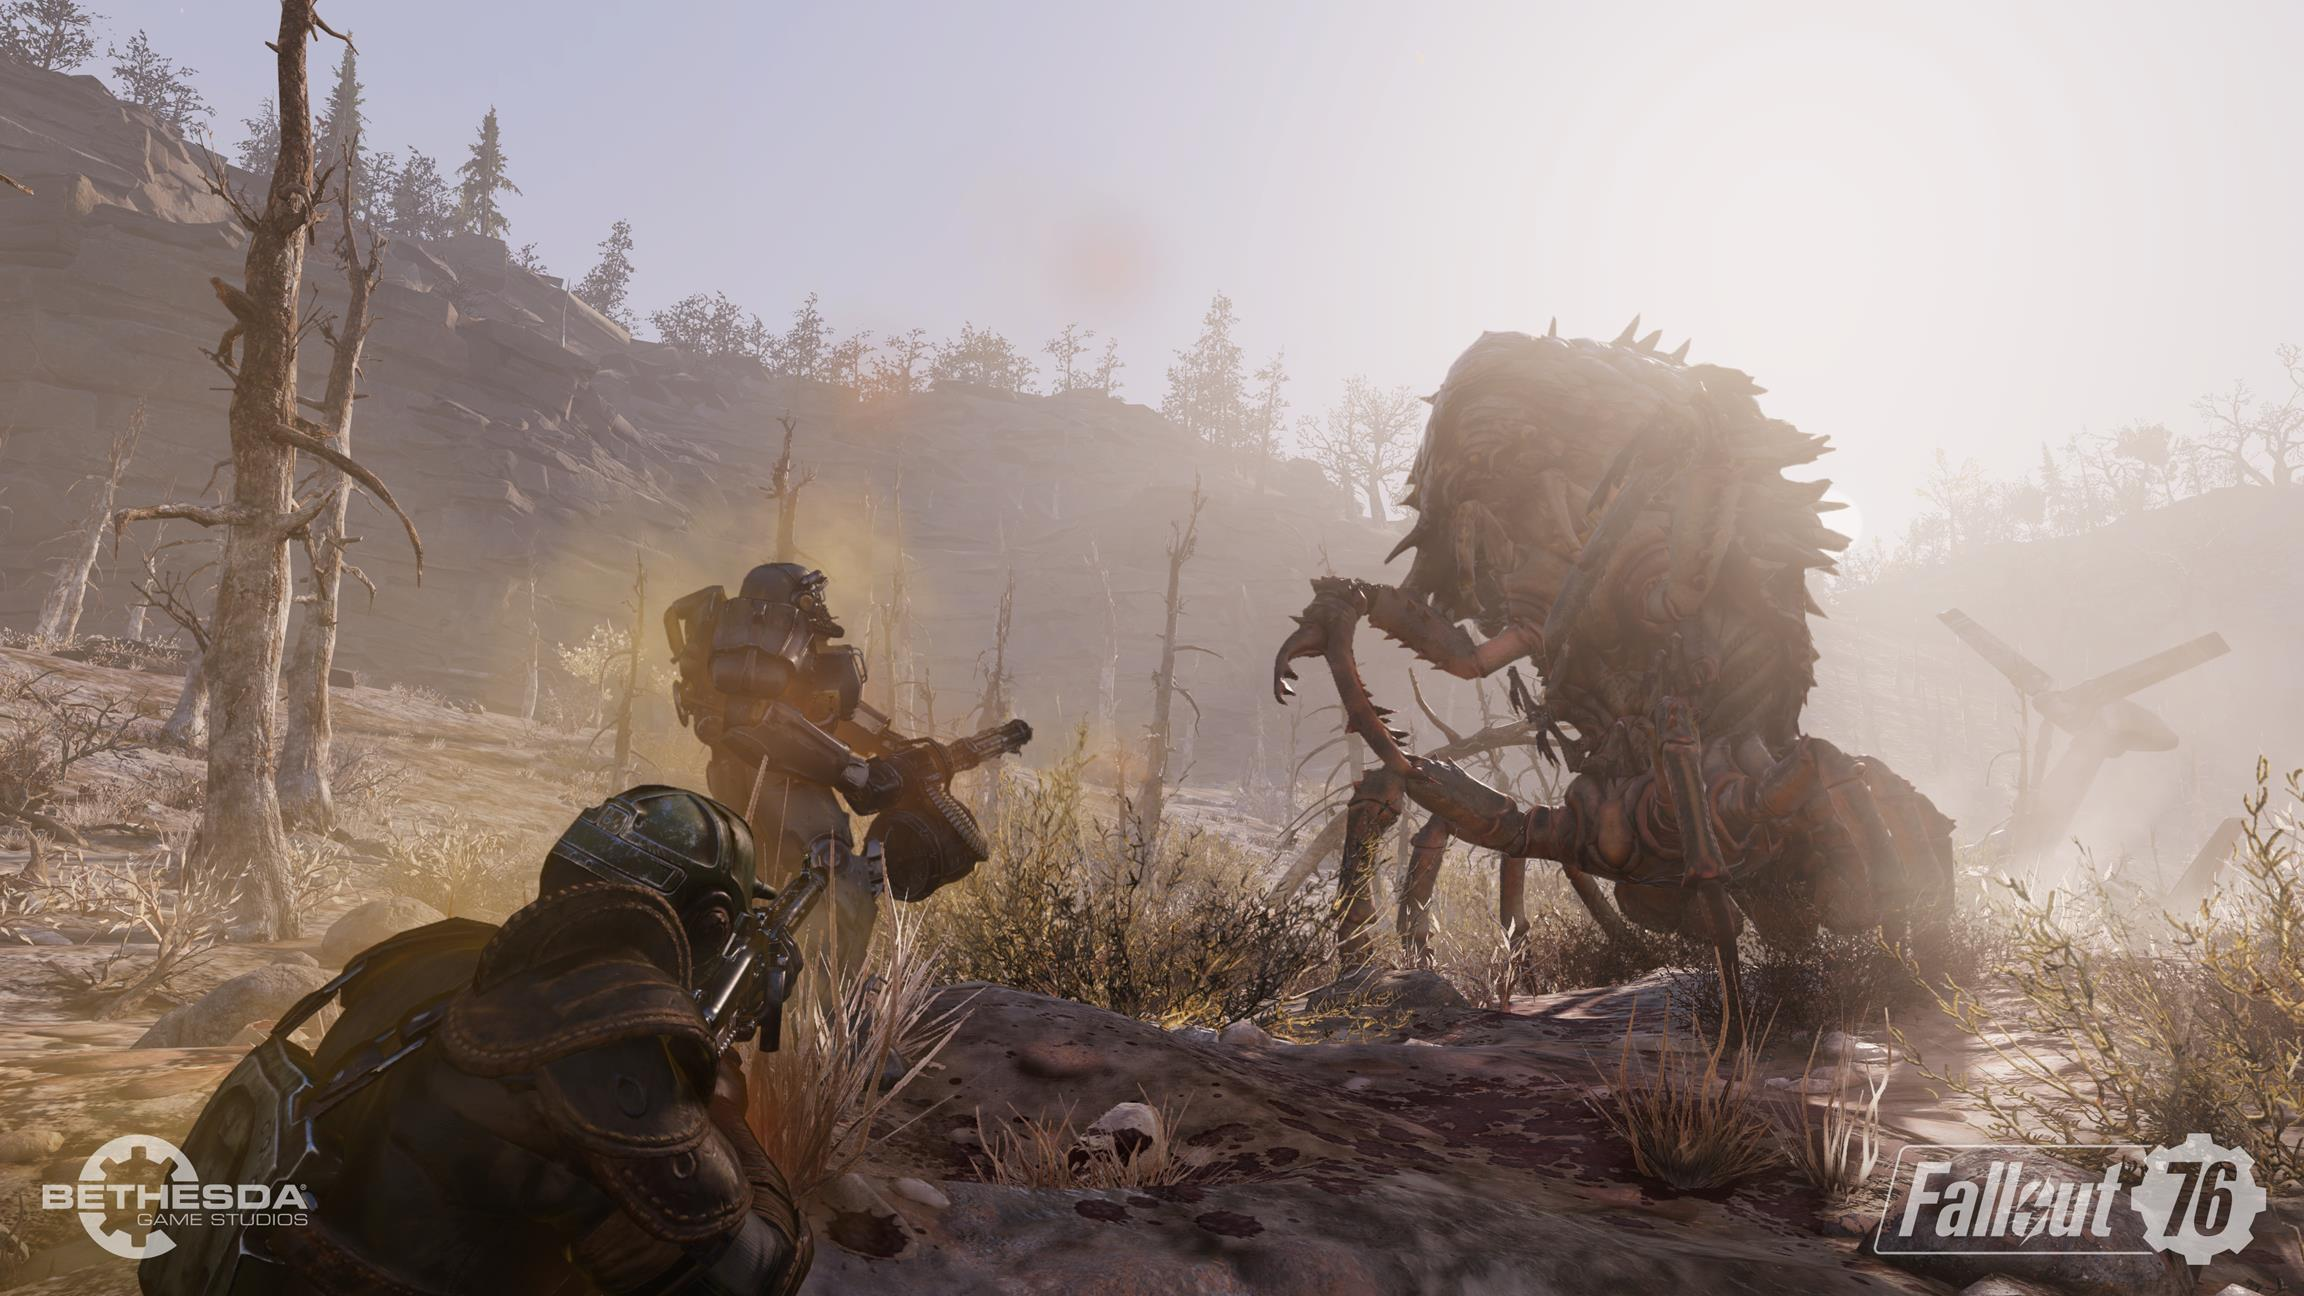 Next Fallout 76 update increases stash limit, fixes issues